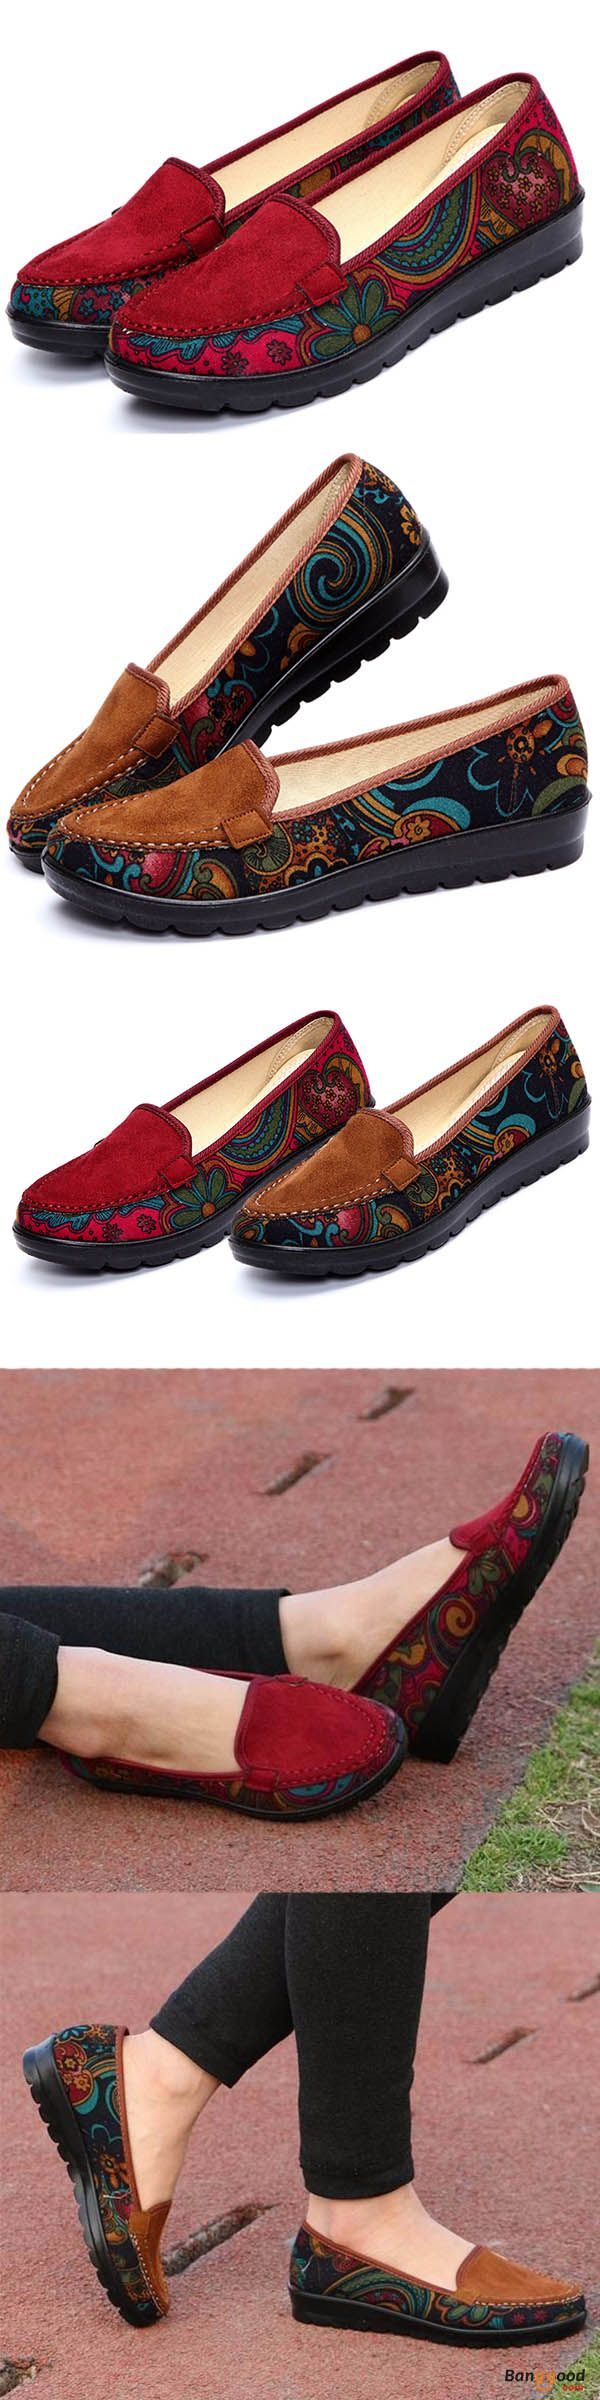 US$22.43 + Free shipping. Women Casual Flat Loafers Slip-on Breathable Shoes Soft Sole Shoes. US Size:5-11. Red or Brown? >>> To view further, visit now.